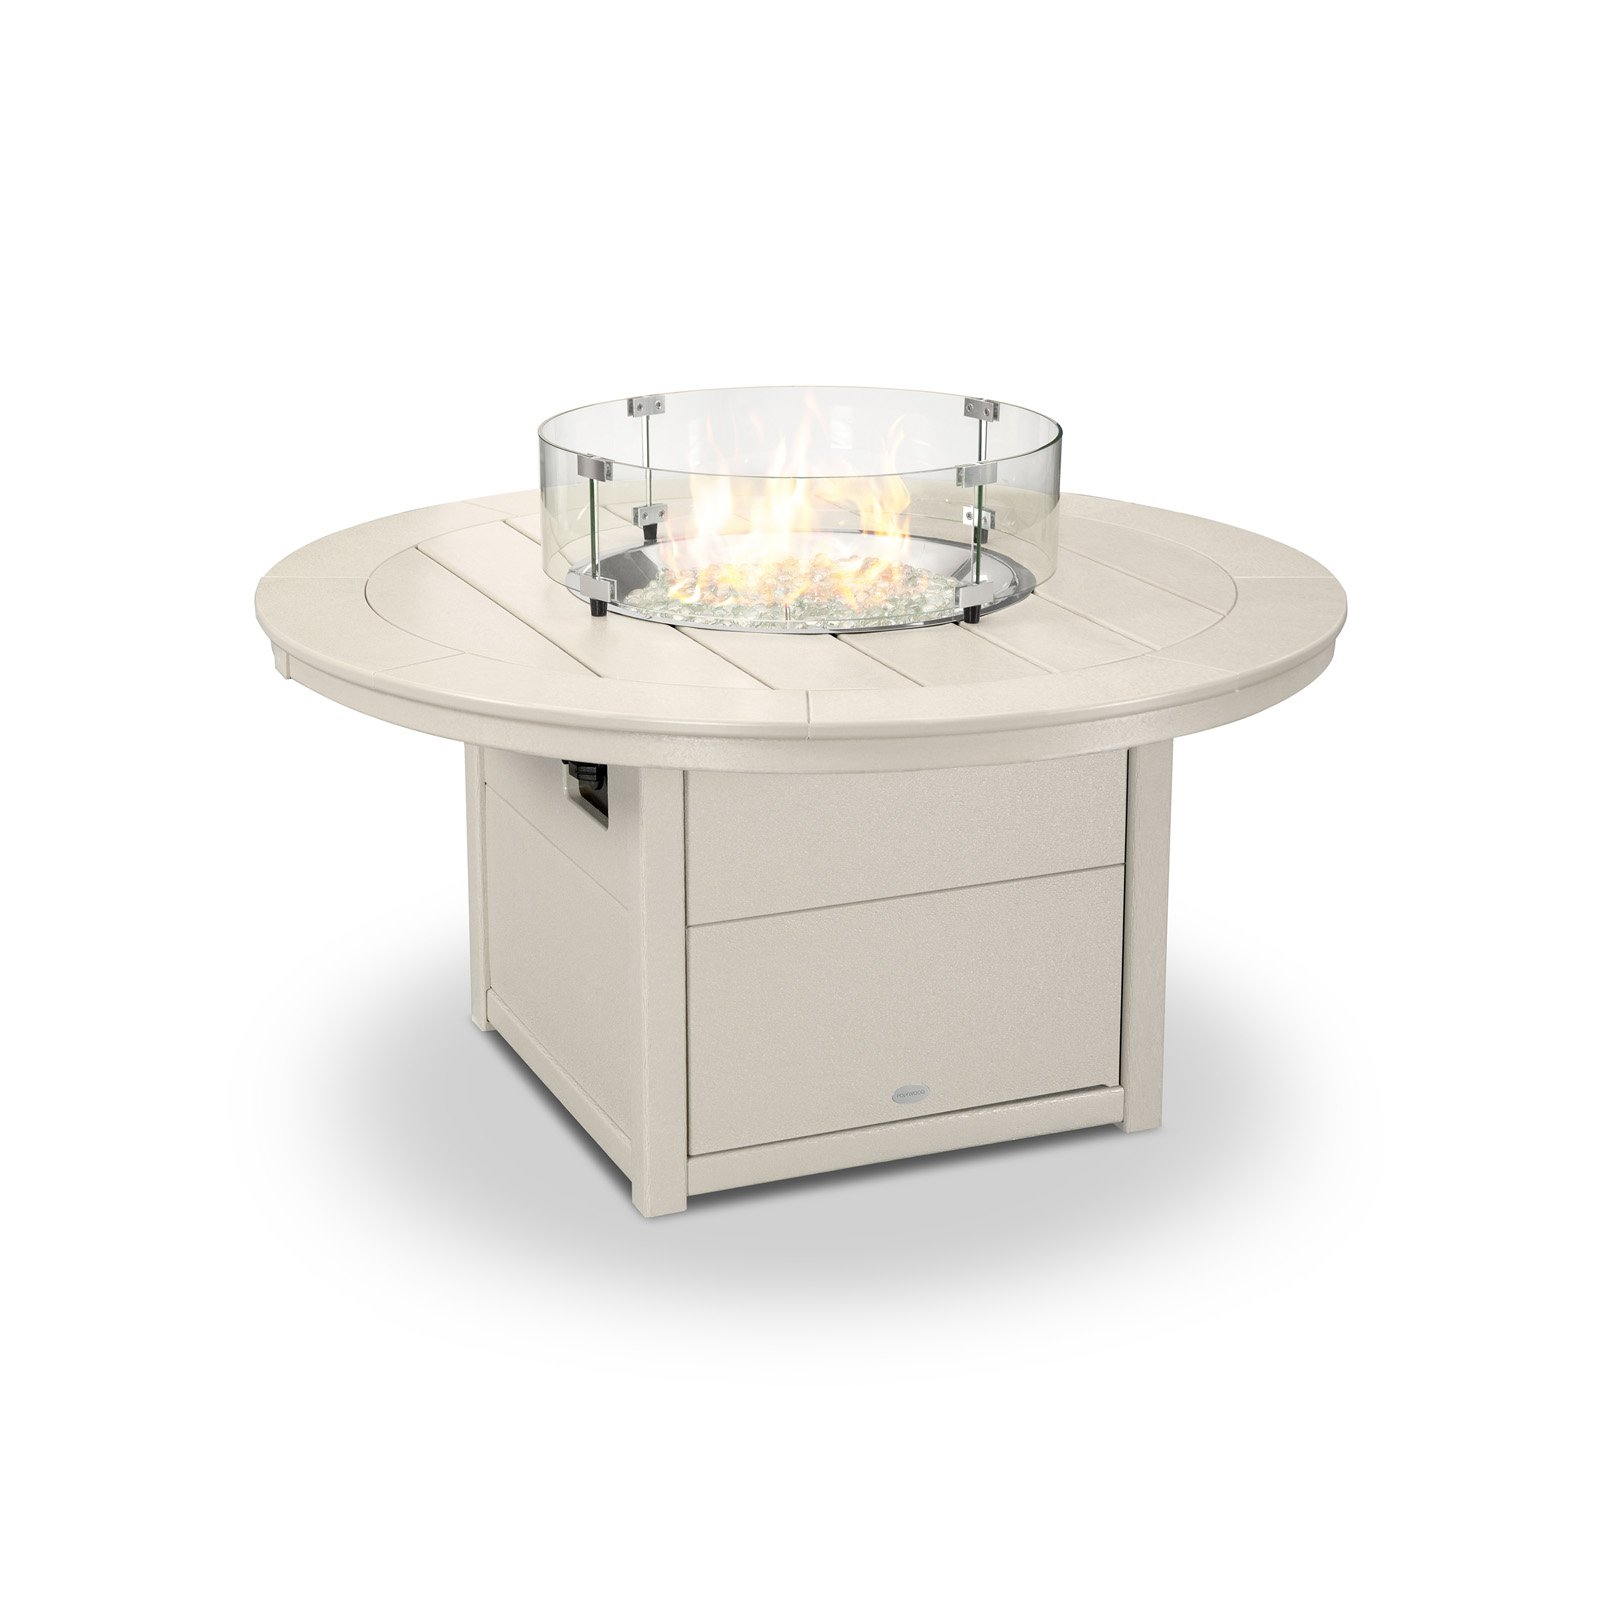 POLYWOOD Round 48 in. Firepit Table by Poly-Wood